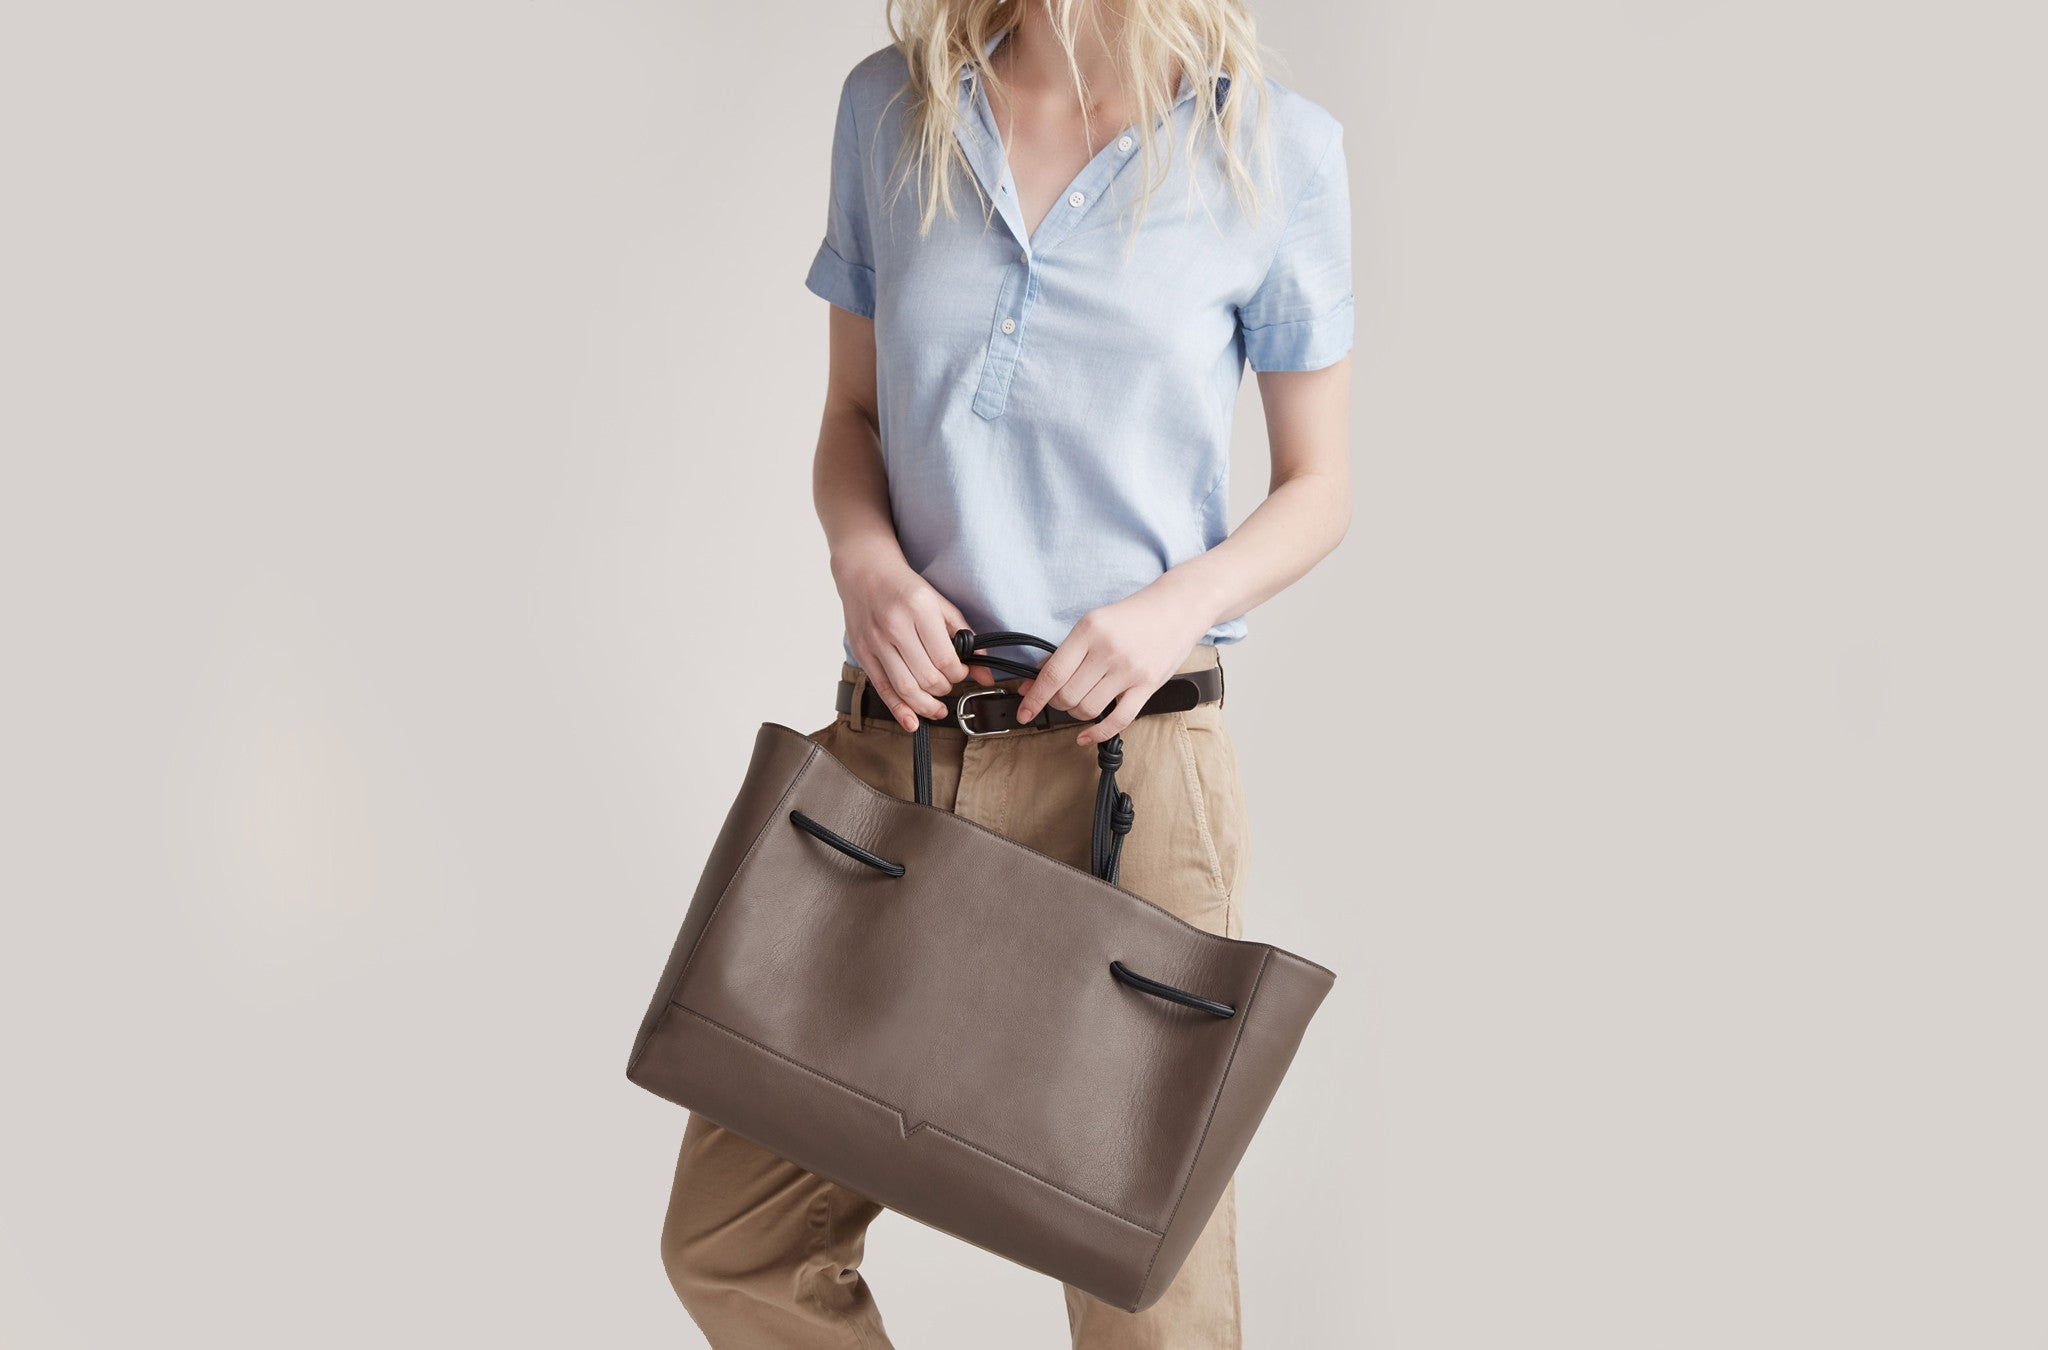 The Tote in Technik-Leather in Taupe and Black